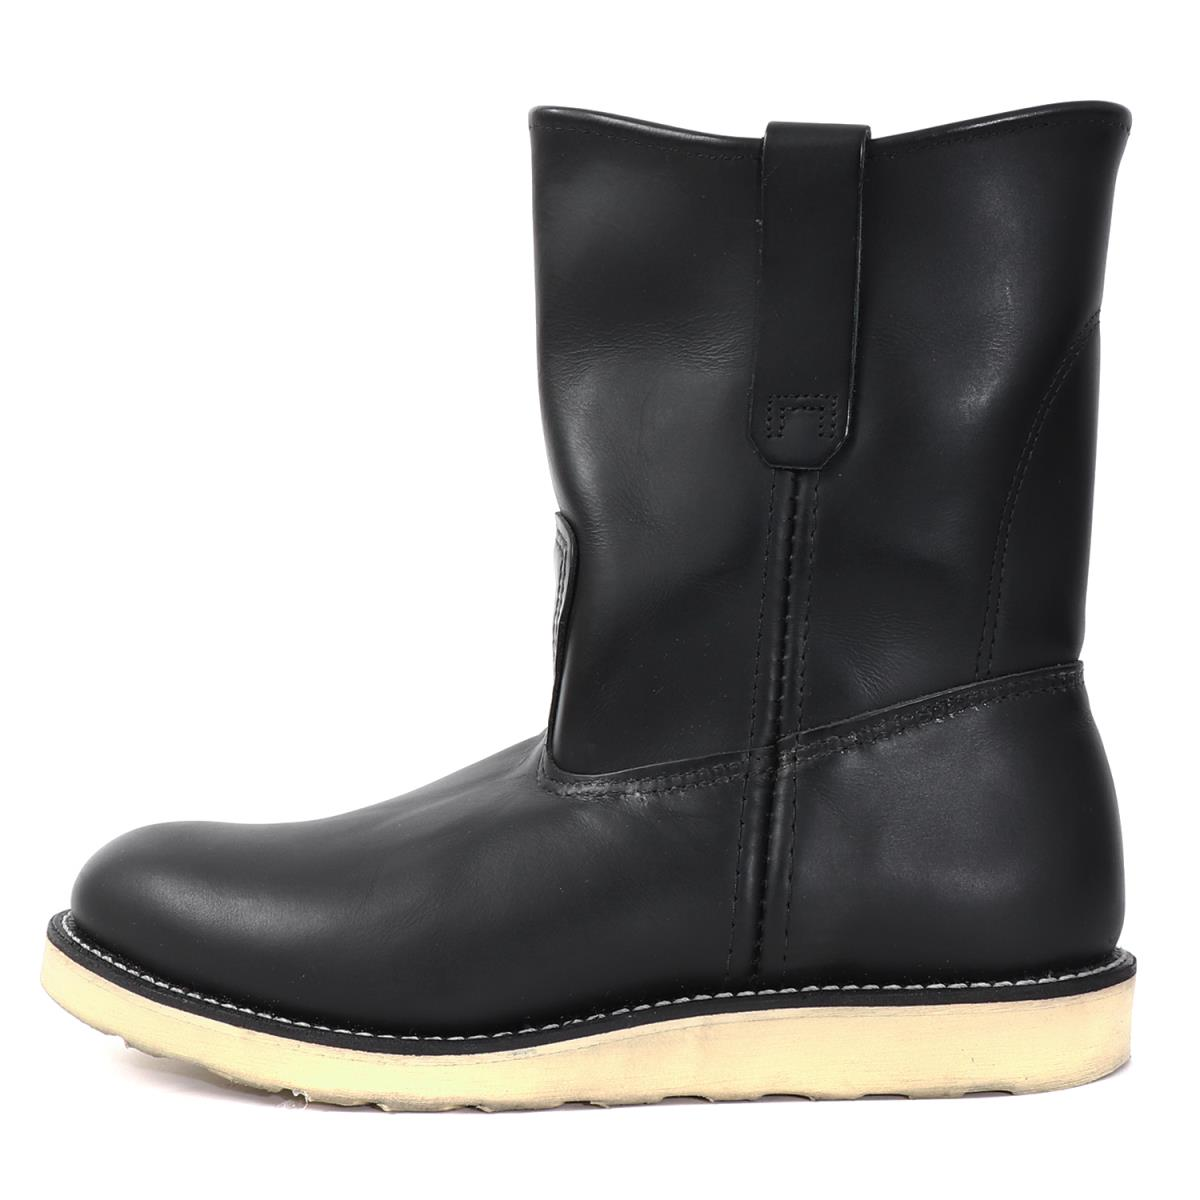 fc10d8e8057 Red Wing (red wing) 14' 8169 leather pekoe boots (Pecos Boots) black US8.5  E(26.5cm)